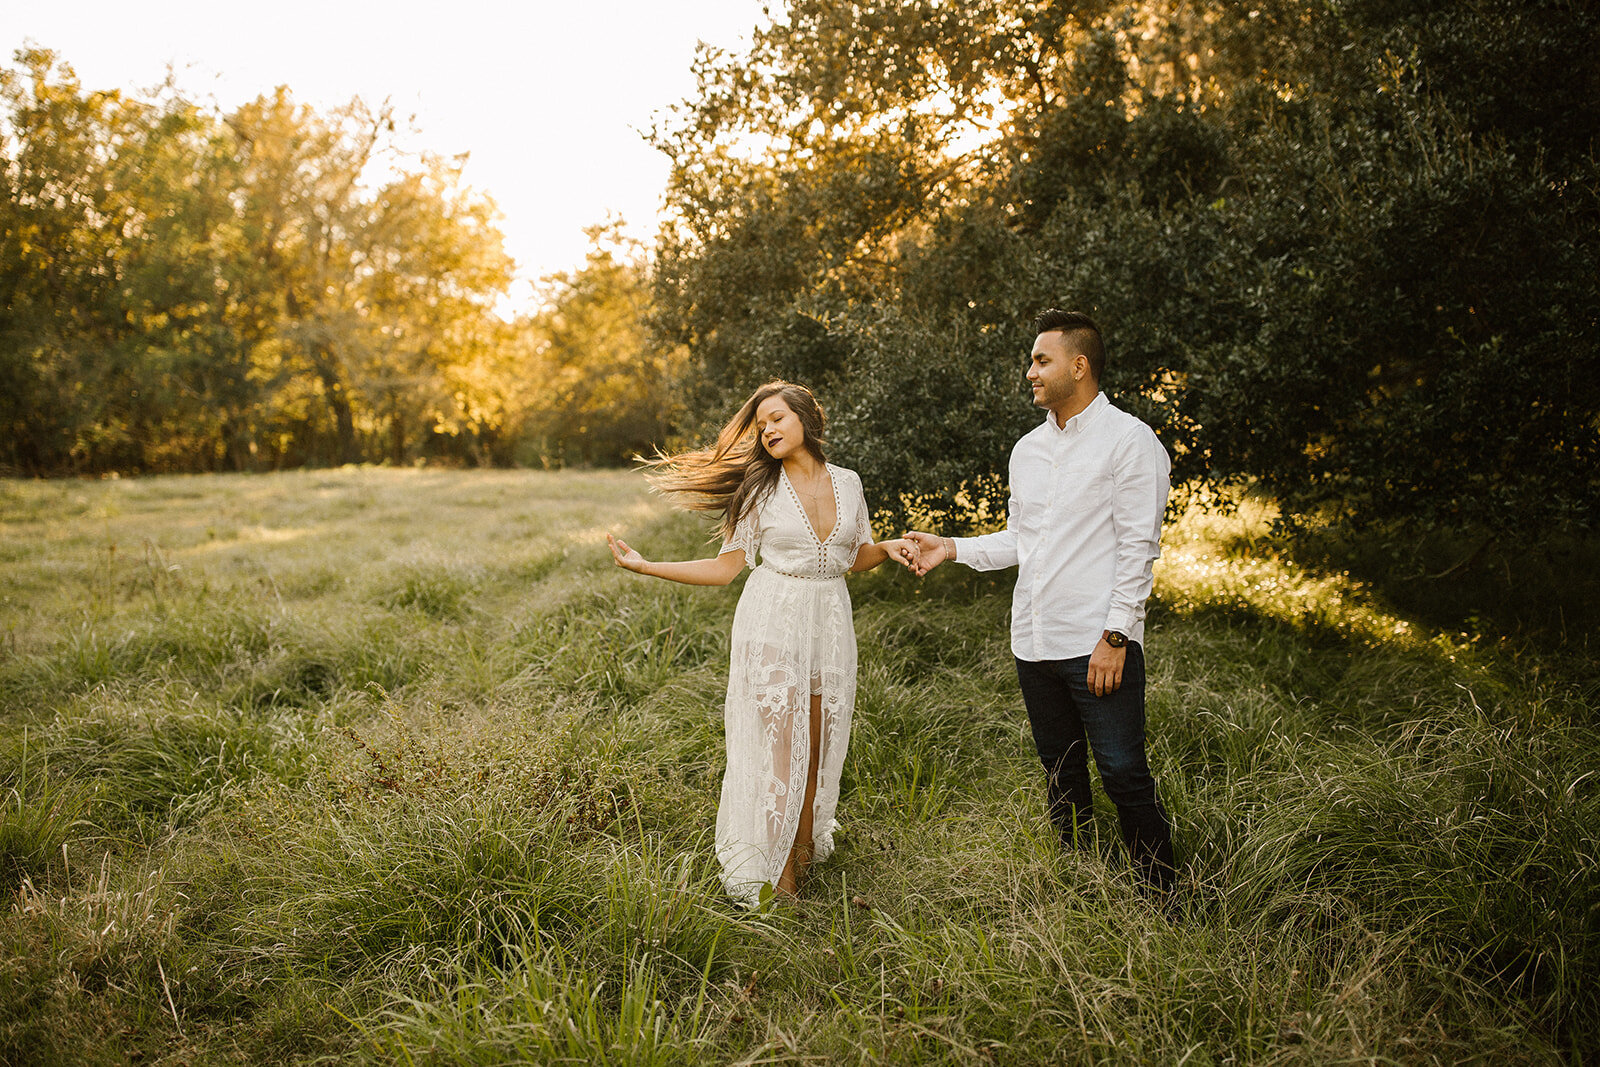 Daisy+Eddie_Brazos Bend State Park_Houston Engagement Session_24